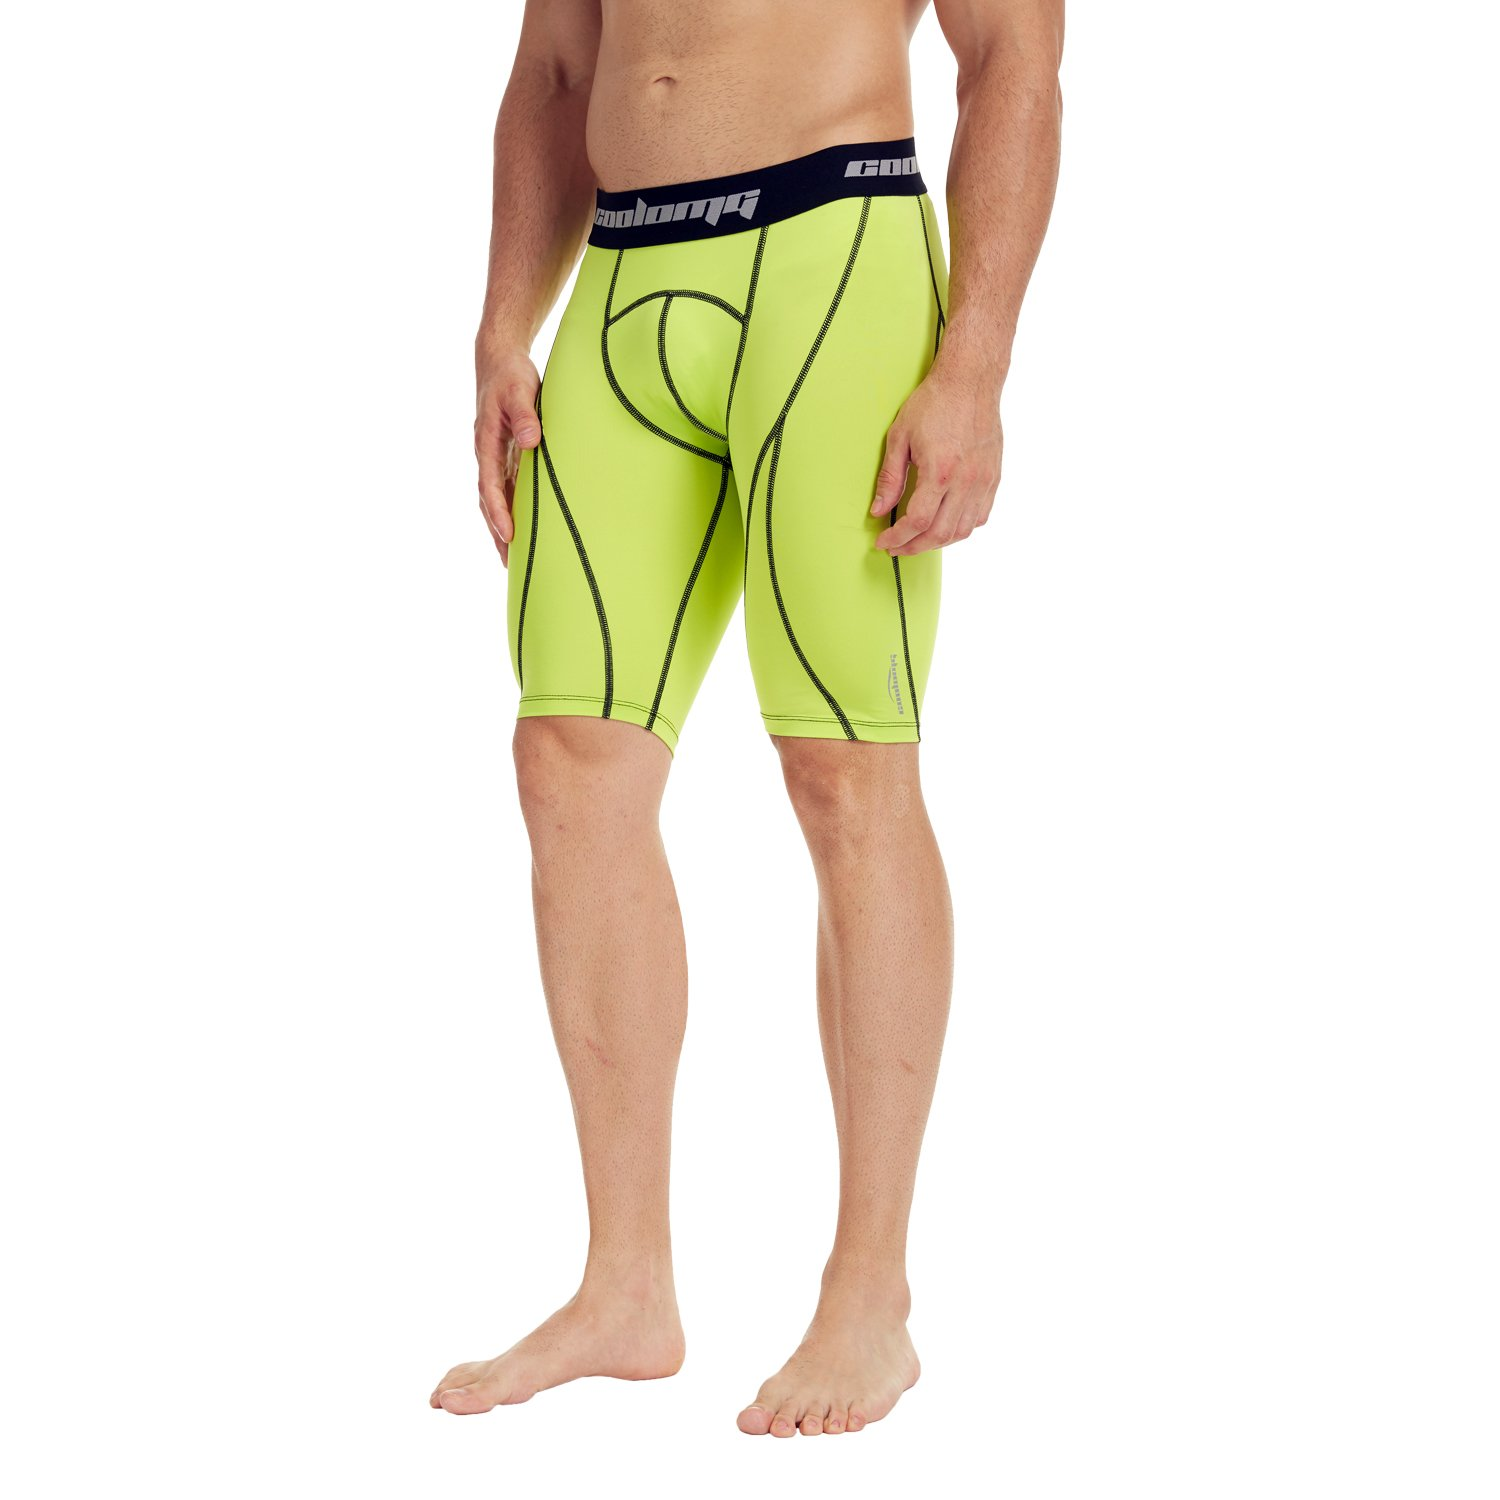 COOLOMG Men's Compression 9 Shorts Underwear Tight Pants Baselayer Cool Dry 10+ Colors